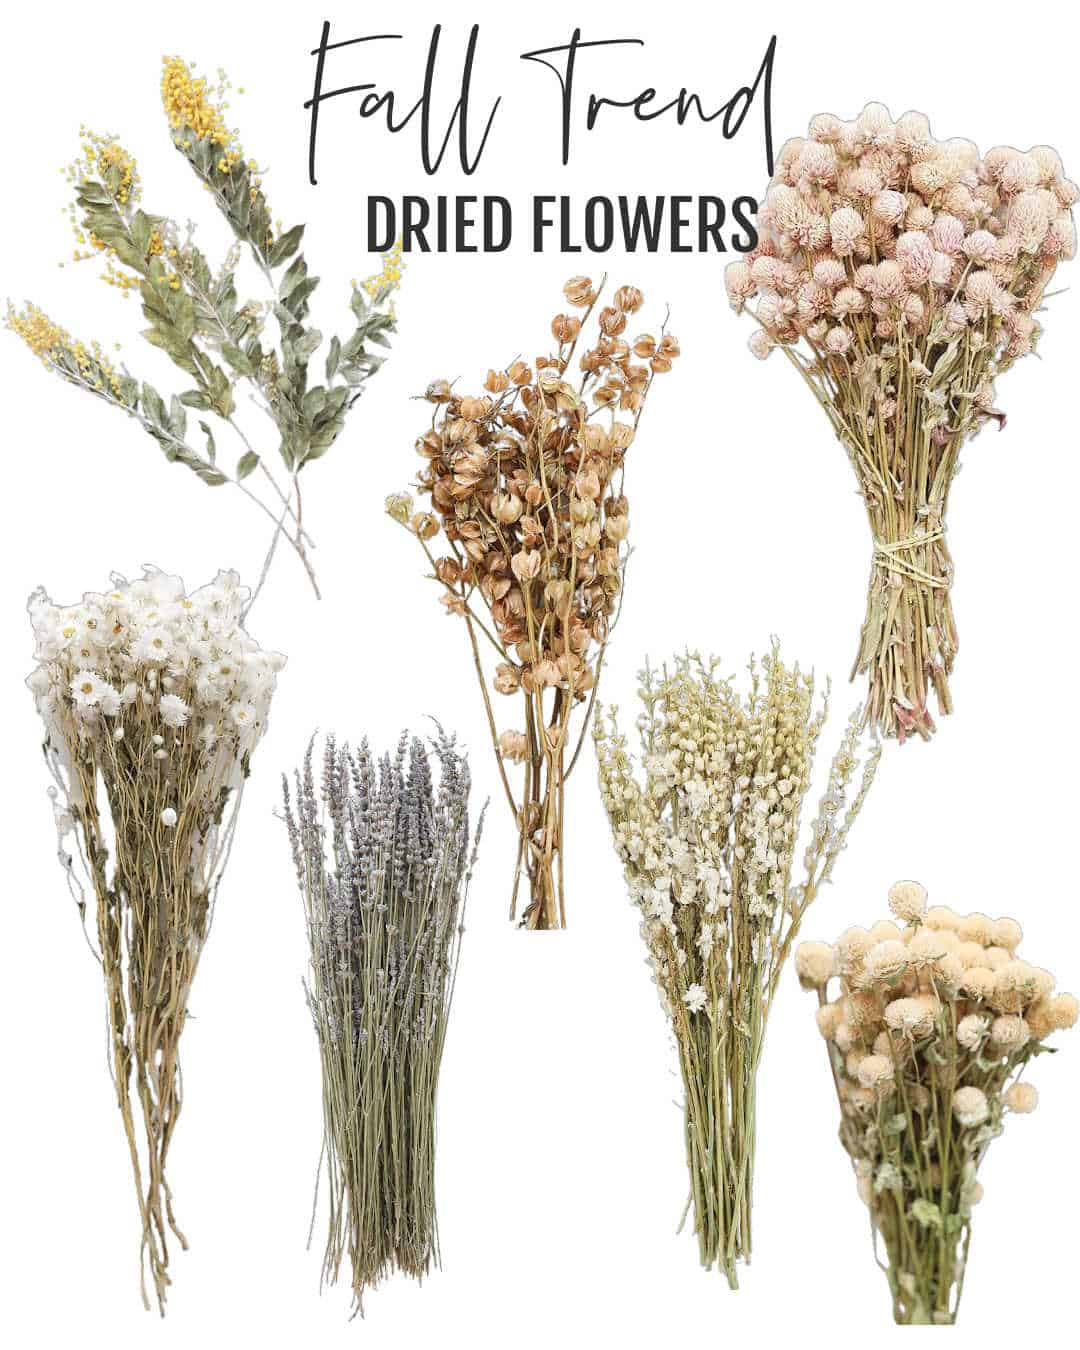 Dried Flower Fall Trend graphic